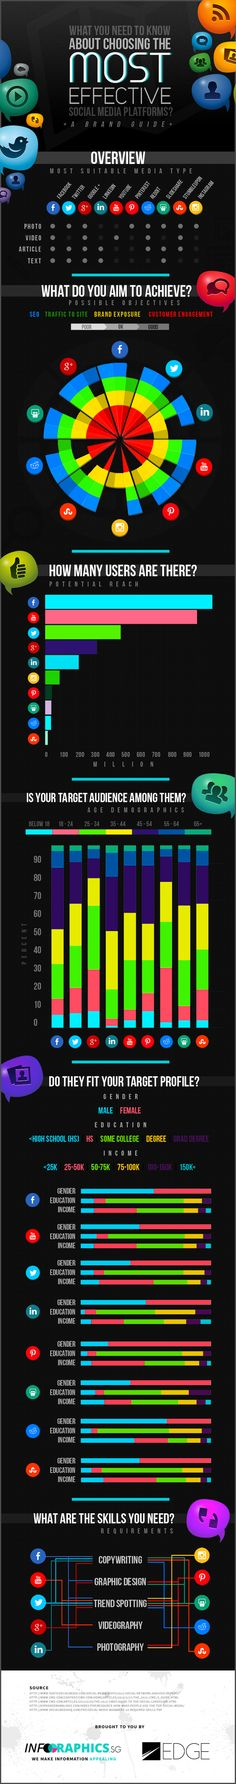 What You Need to Know About Chosing the Most Efficient Social Media Platforms #INFOGRAPHIC